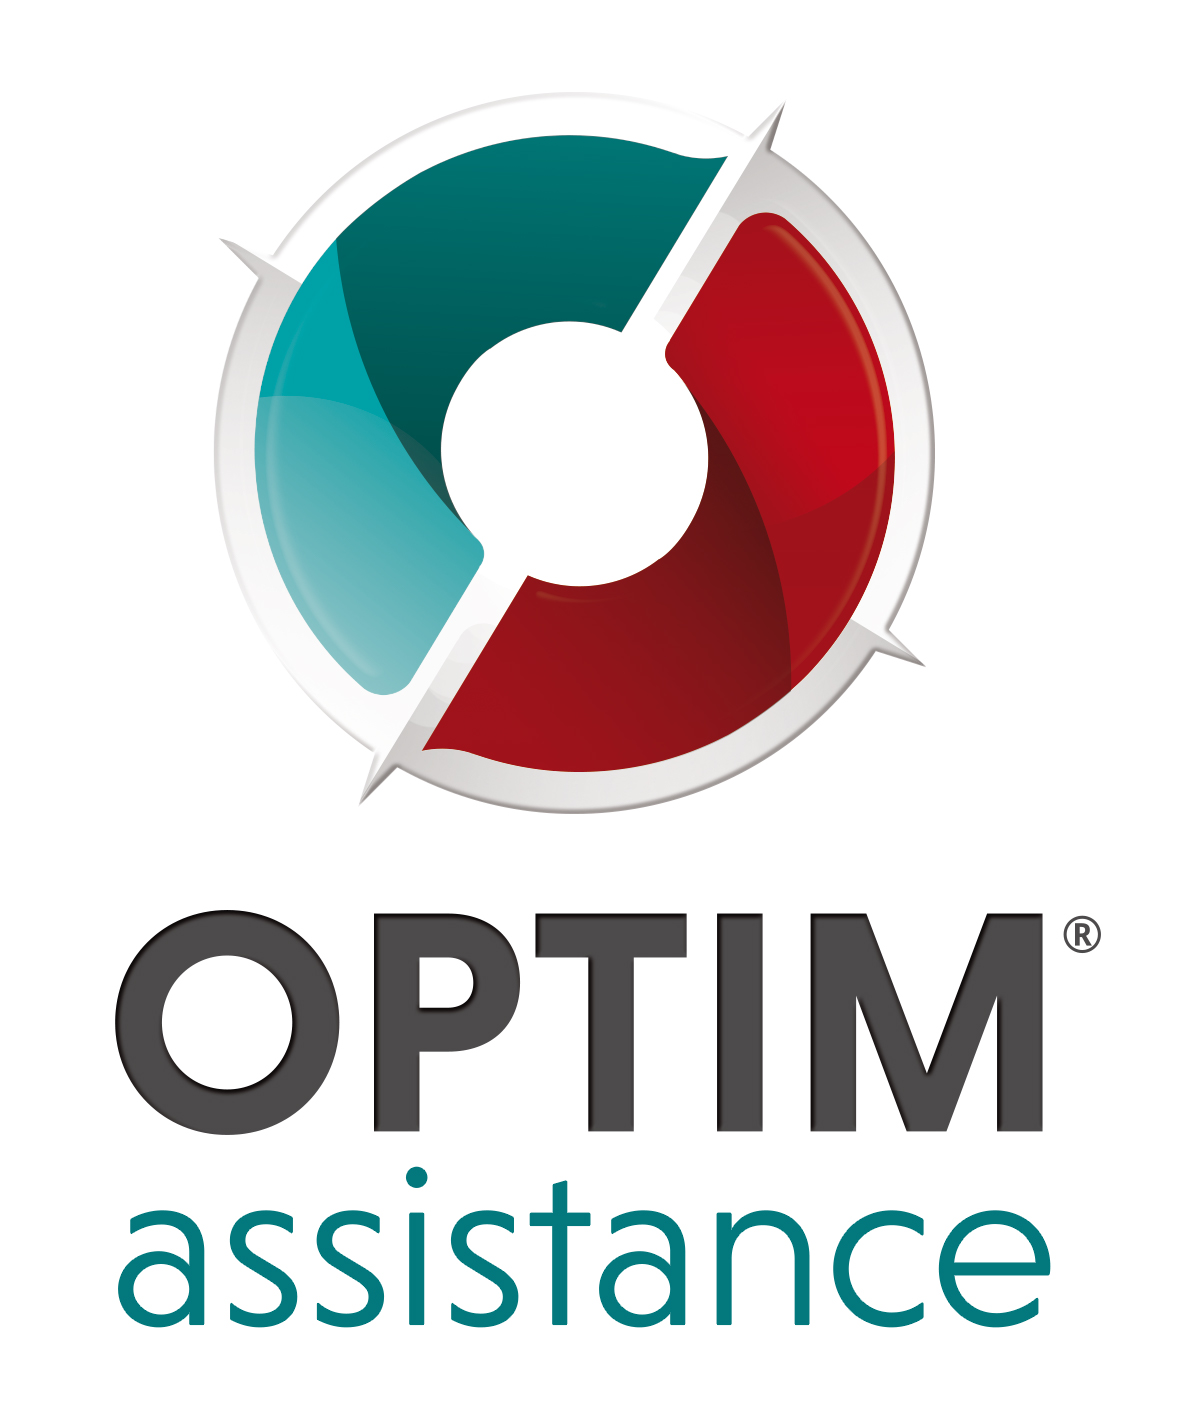 Logo OPTIM assistance